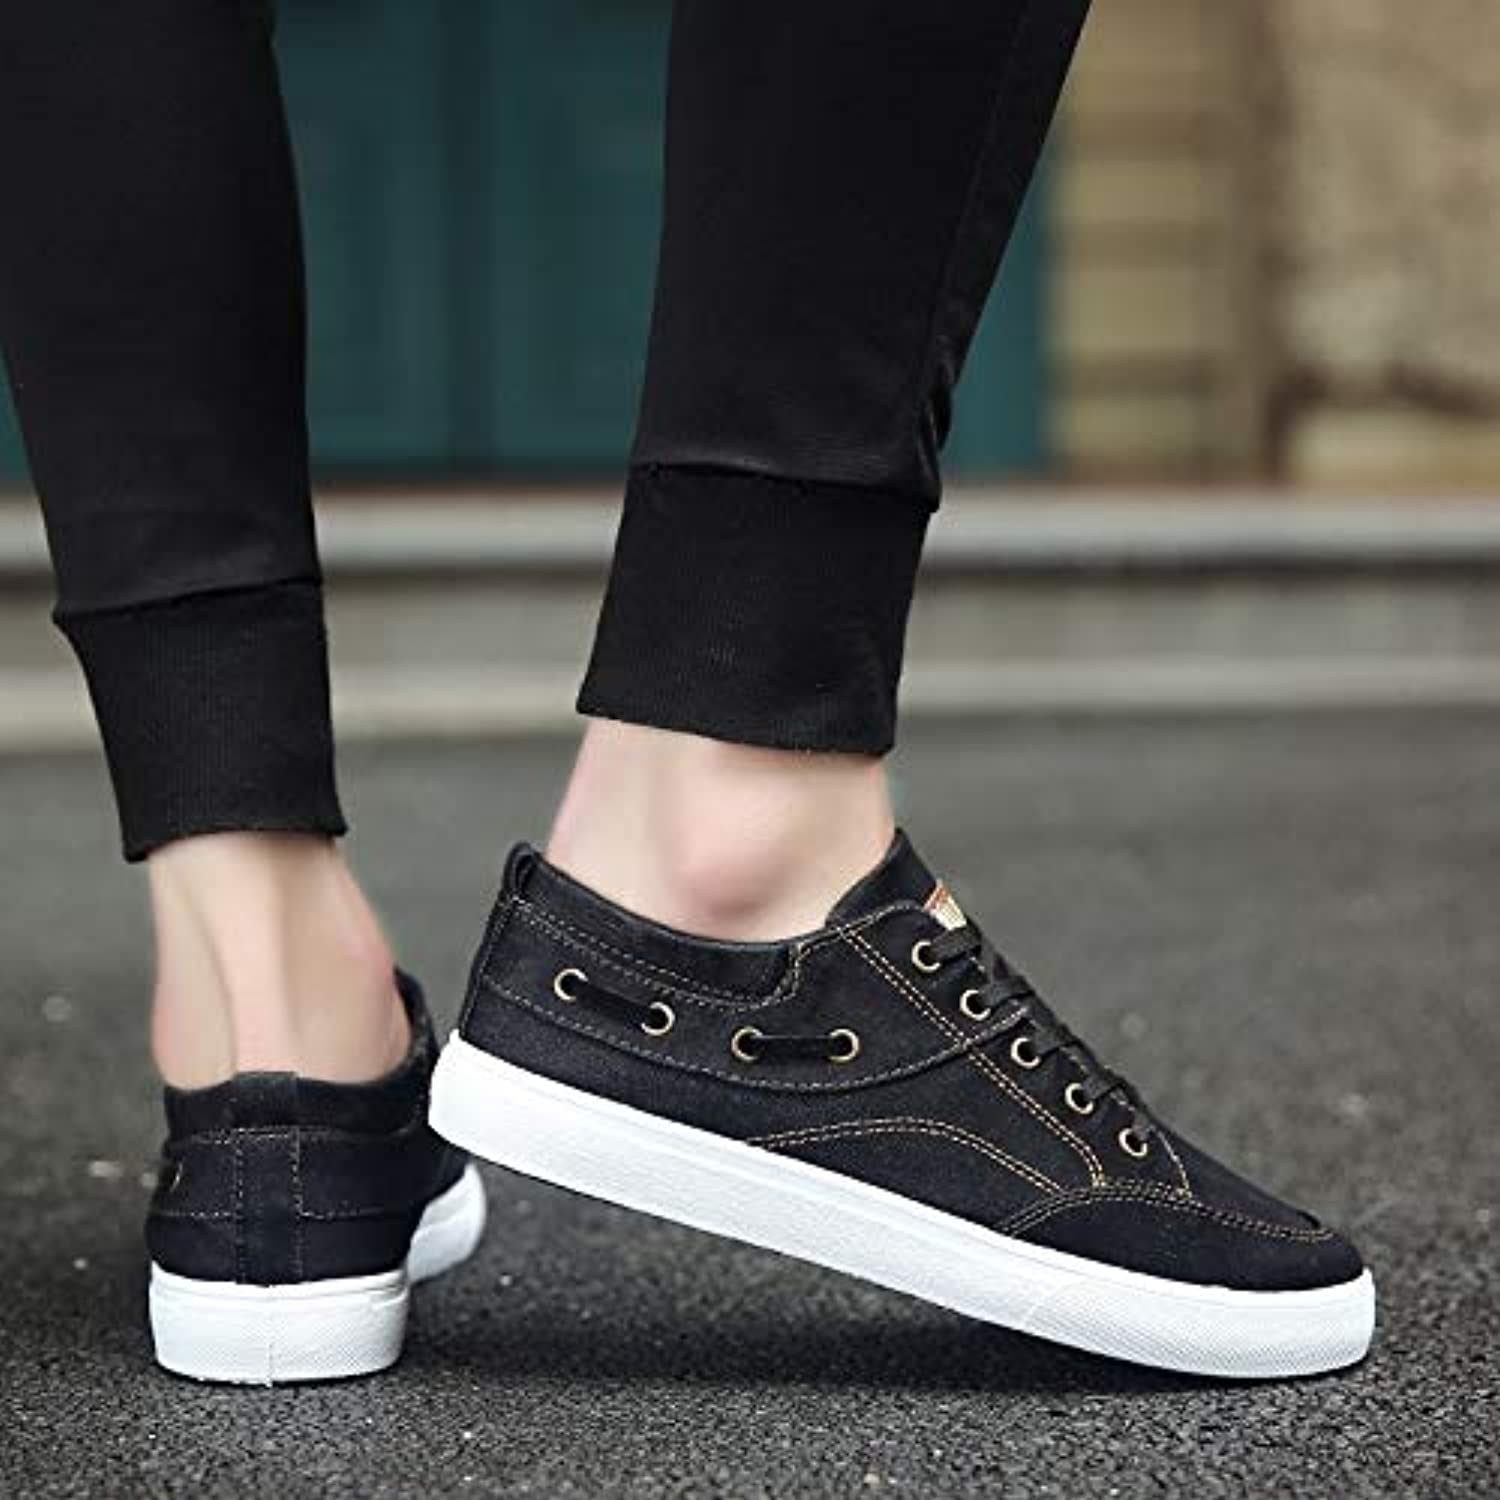 Anstorematealliance Outdoor&Sports shoes Fashion Trend Solid color Low-top Casual Canvas shoes (color Black Size 39)